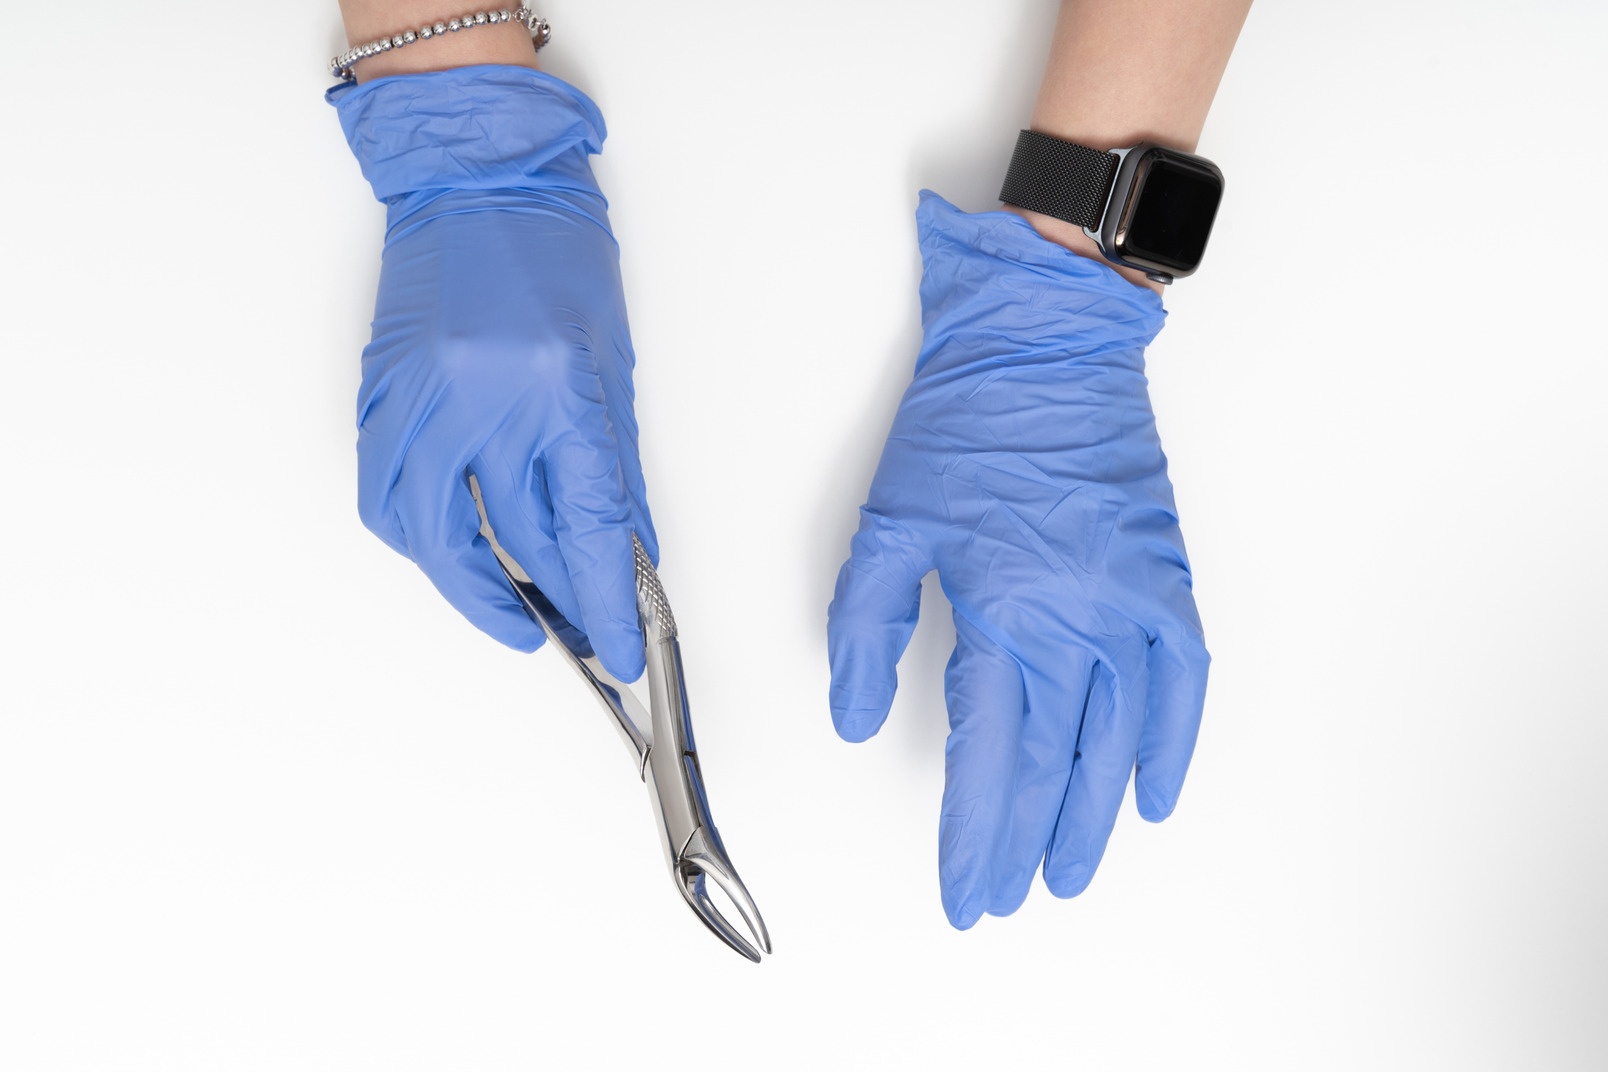 A pair of blue gloves hanging on a rope